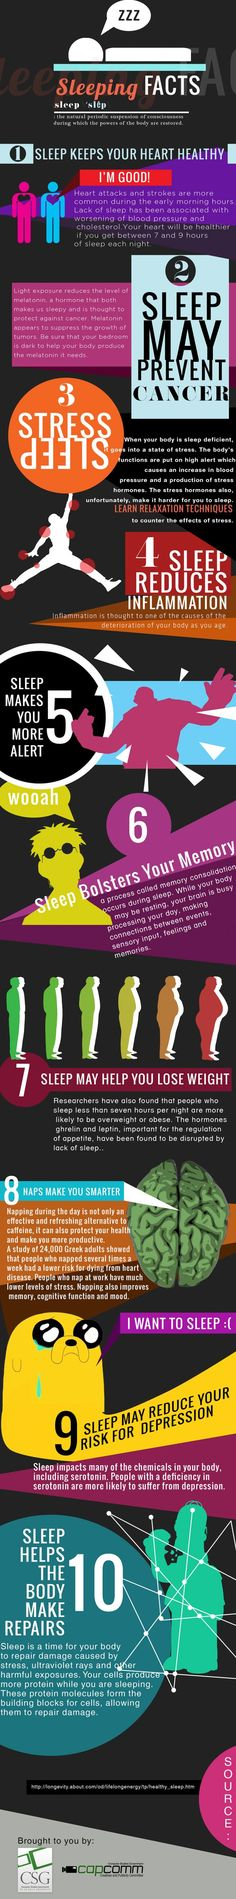 Sleep makes you smarter! So make sure that adequate sleep is one of your top priorities as a student, please! #sleep. #health